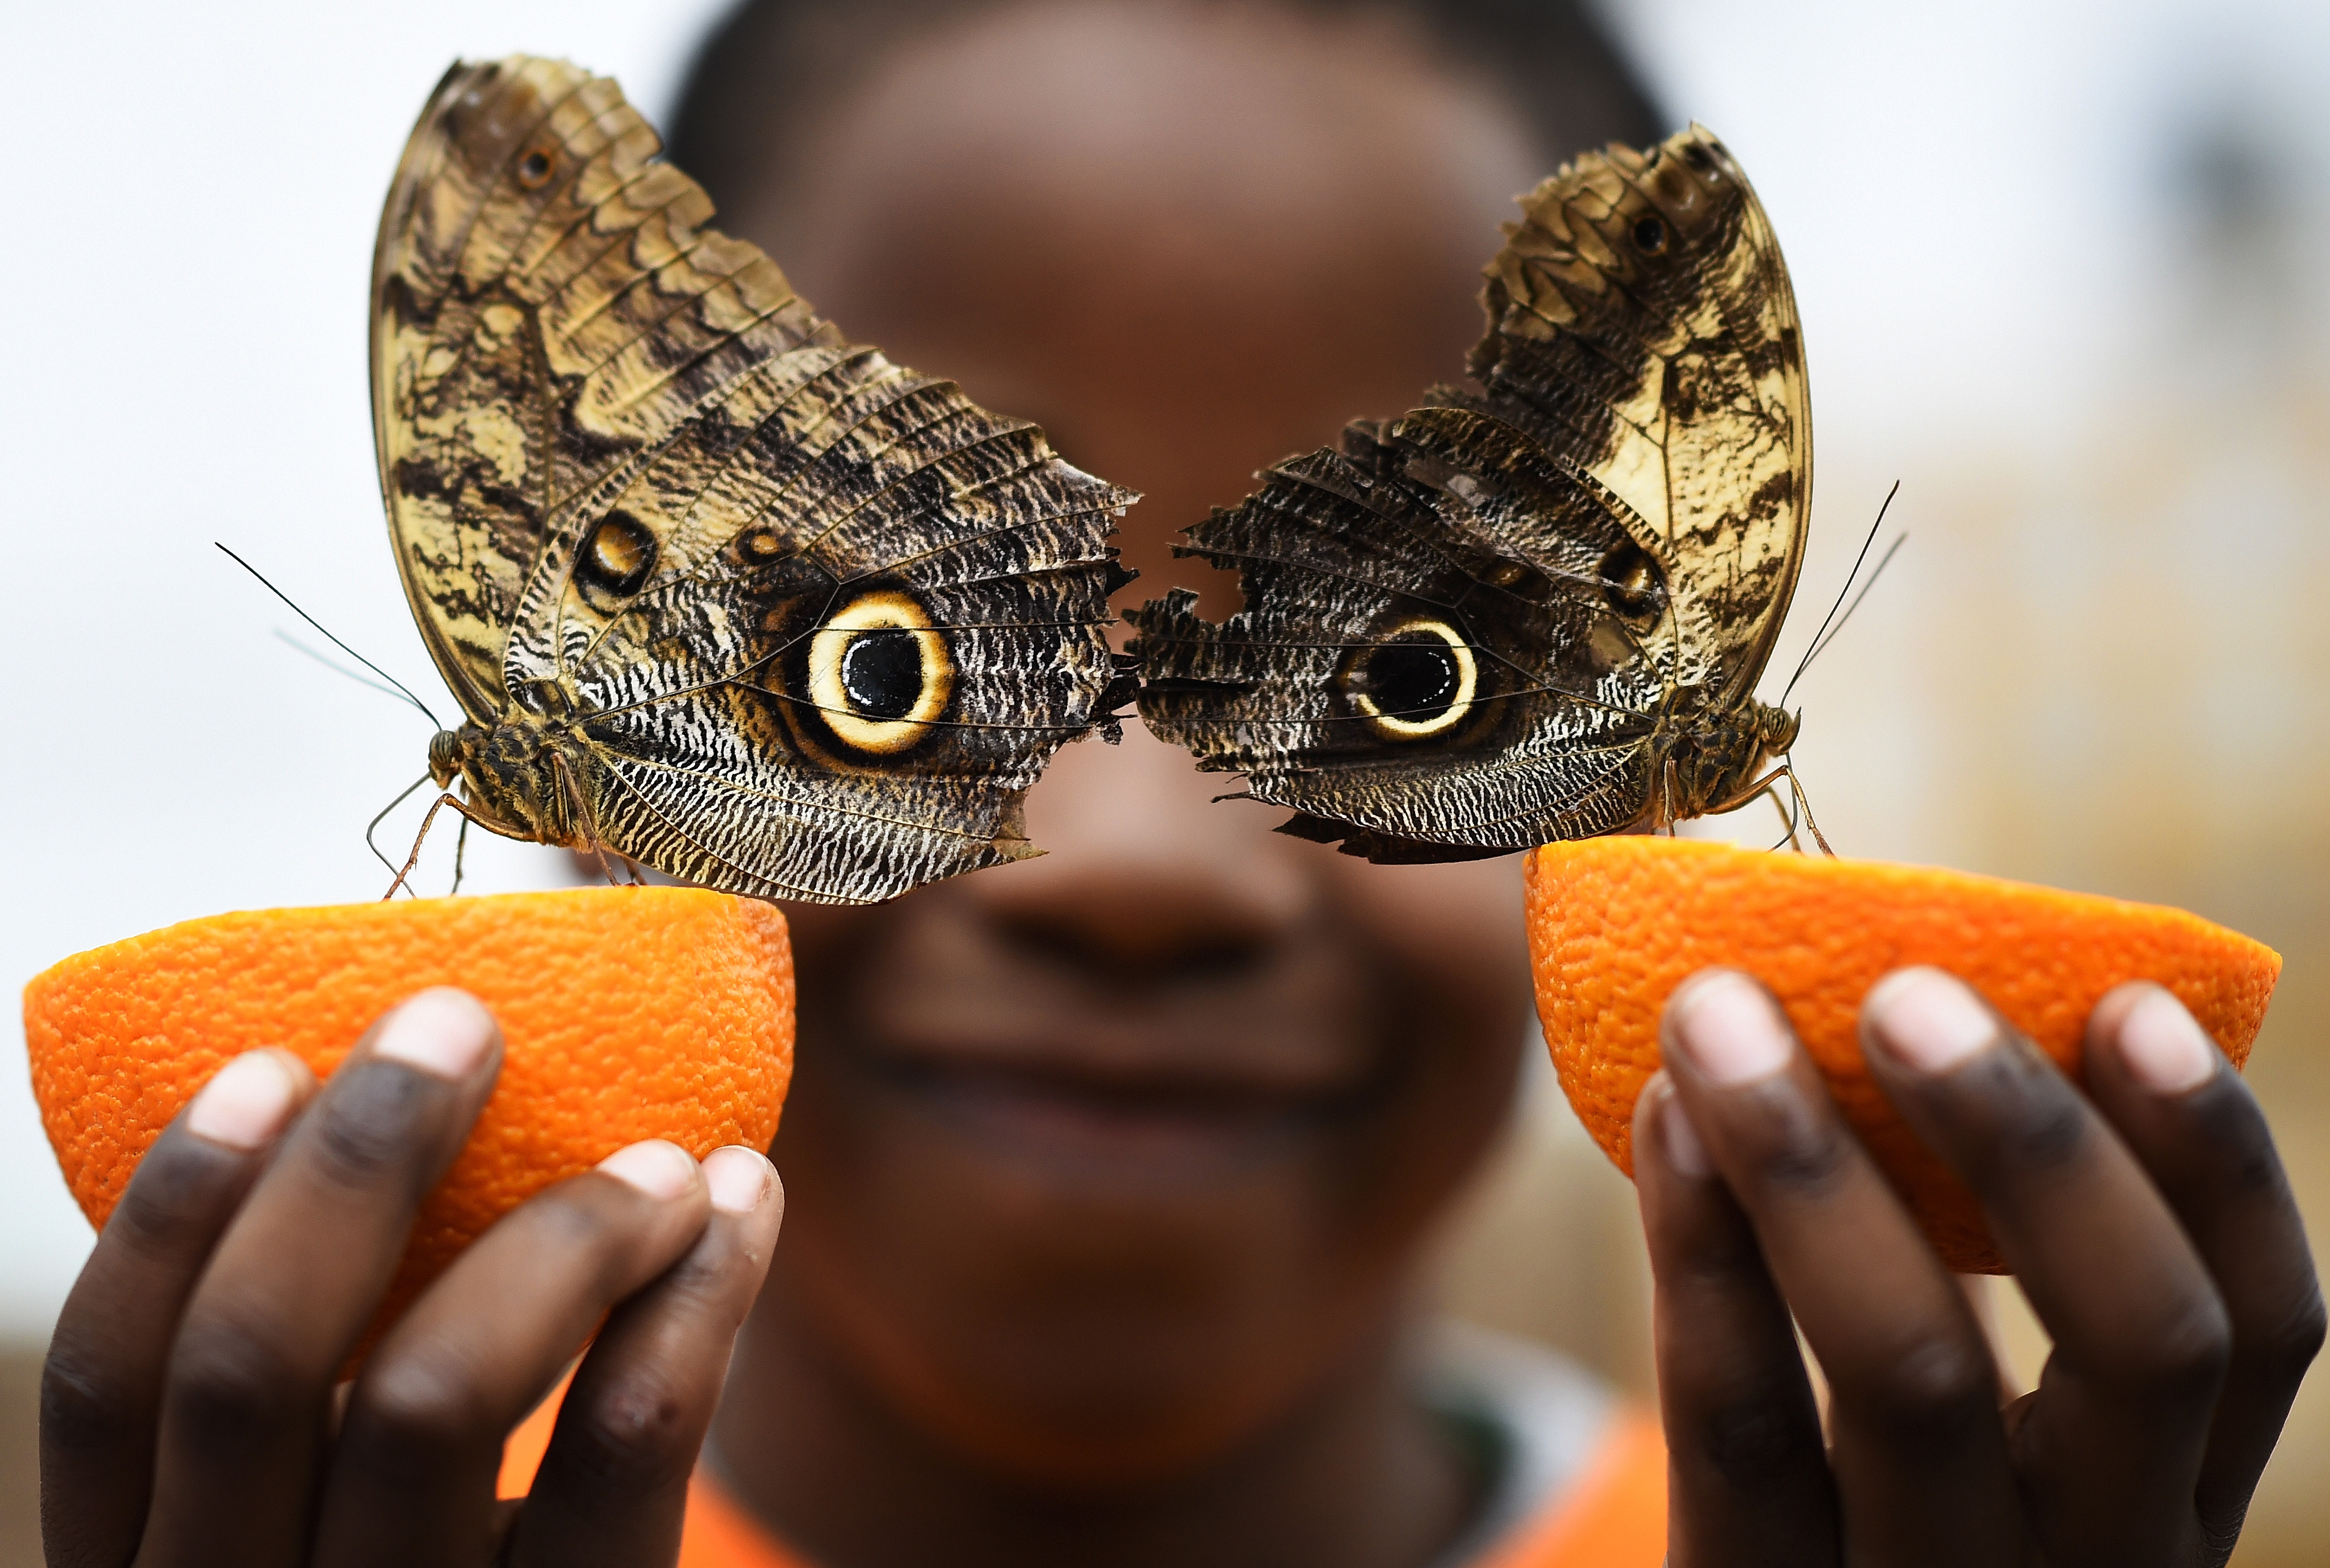 Bjorn, aged 5, smiles as he poses with owl butterflies during an event to launch the Sensational Butterflies exhibition at the Natural History Museum in London, on March 23, 2016.